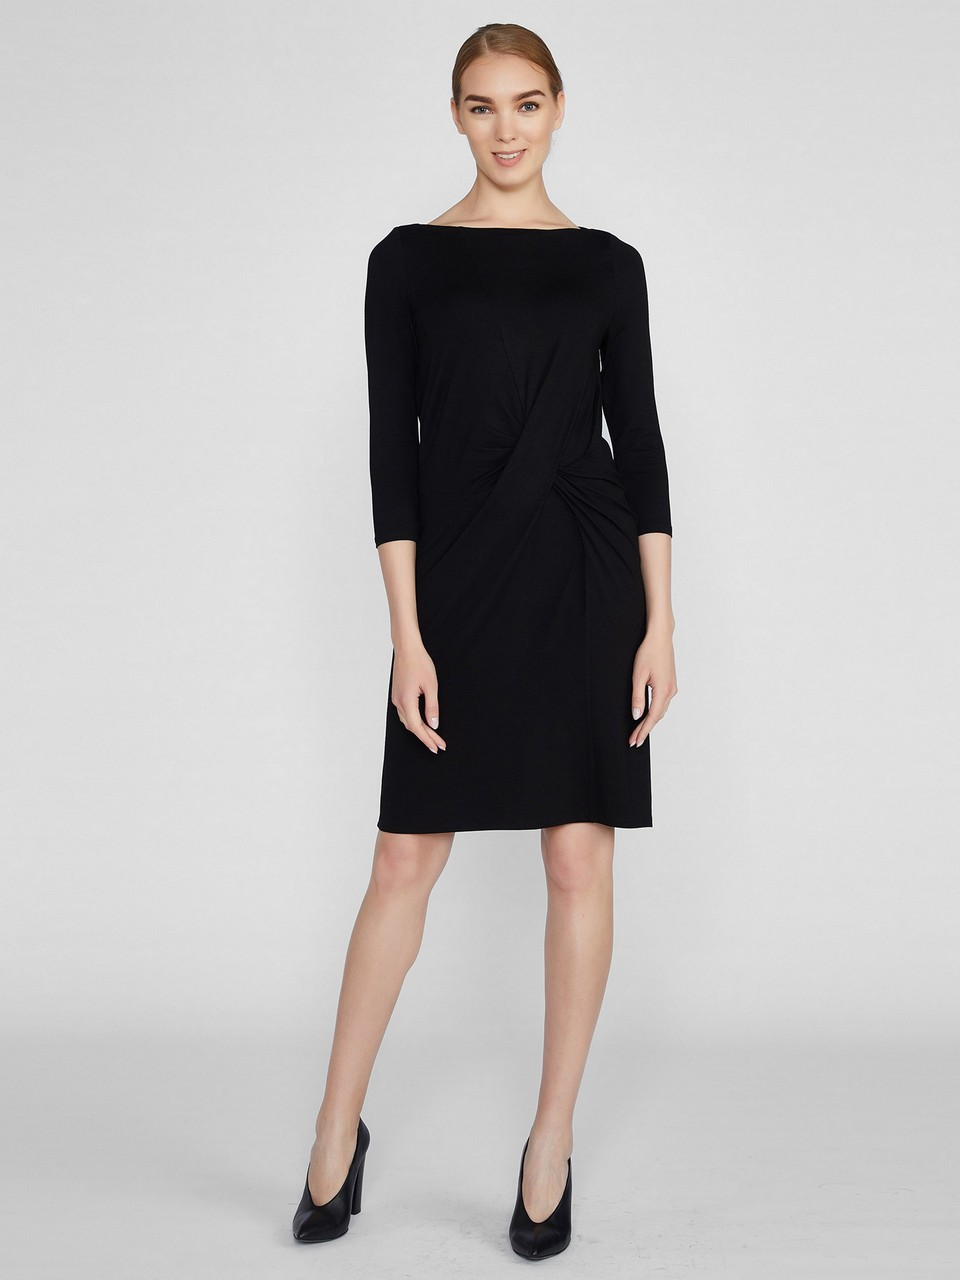 Boat Neck Three Quarter Sleeve Dress